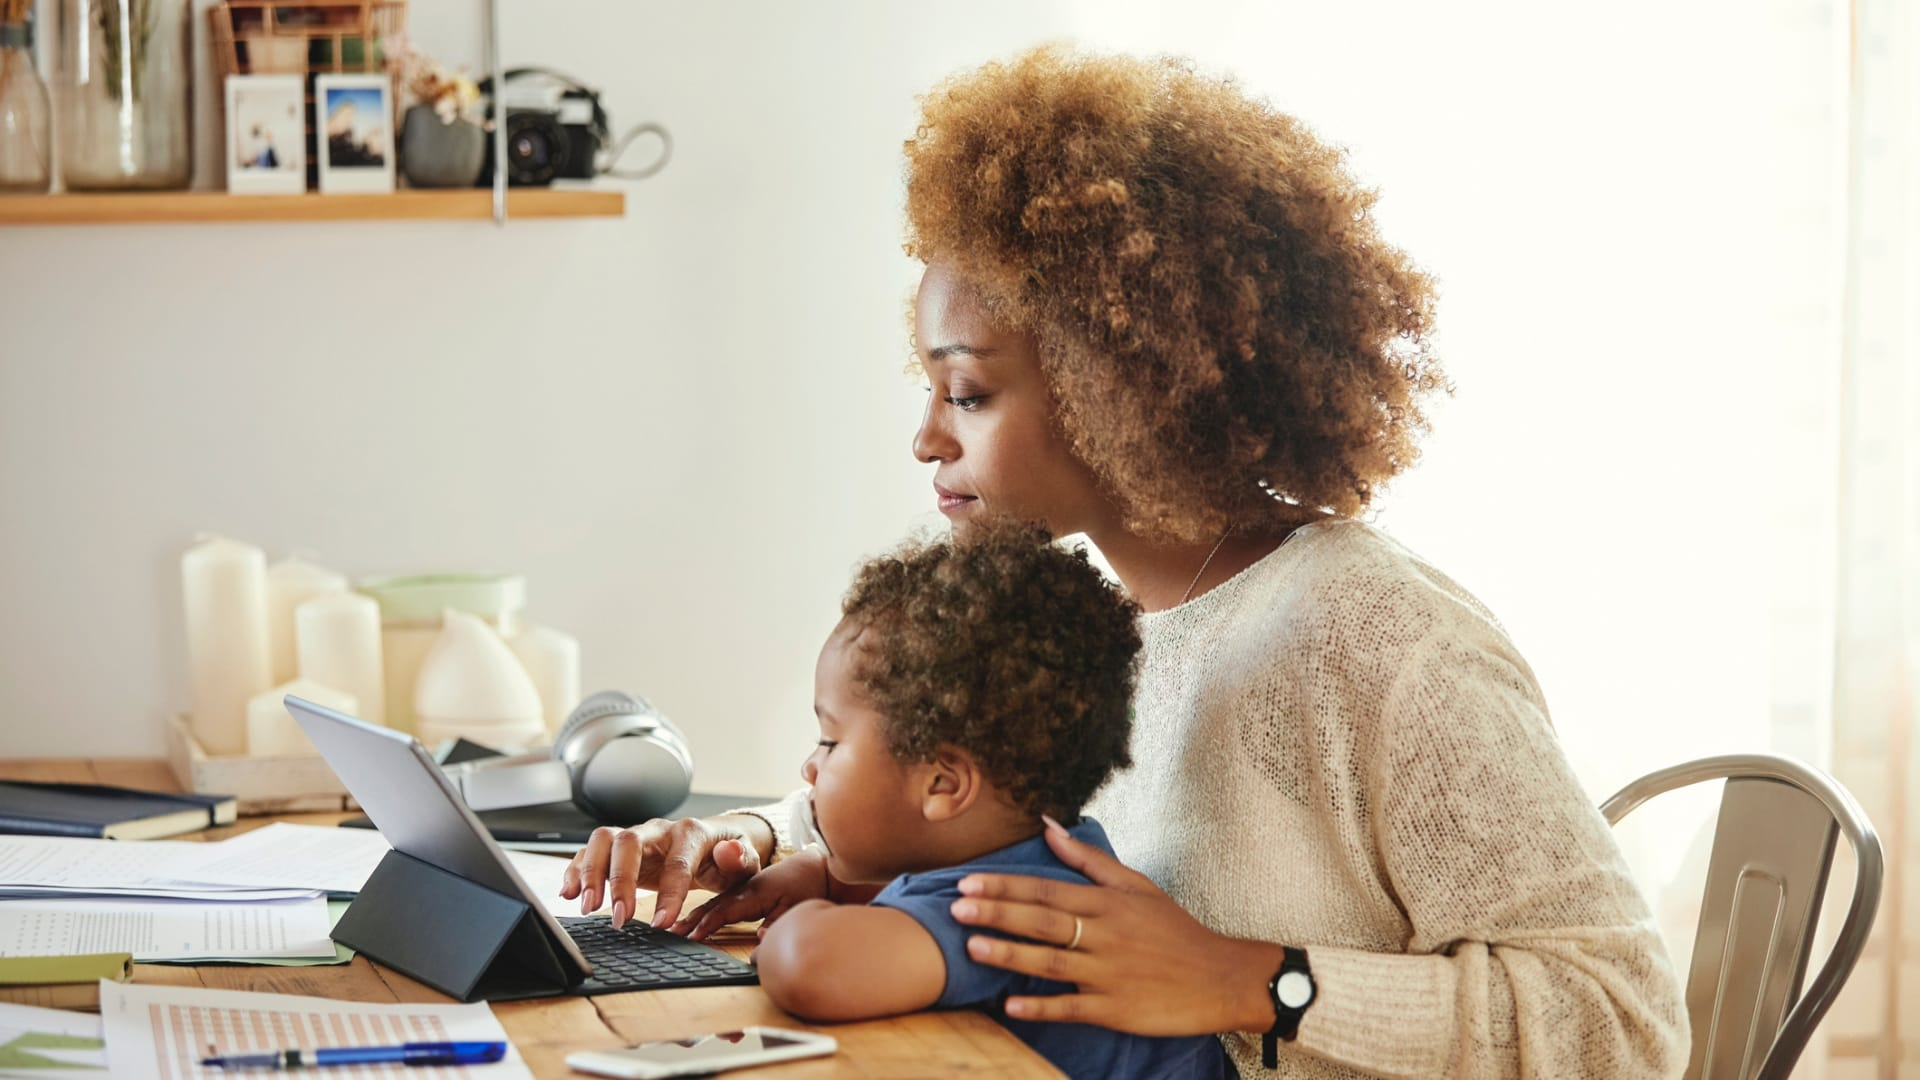 4 Ways to Survive Working (and Learning) From Home With Kids